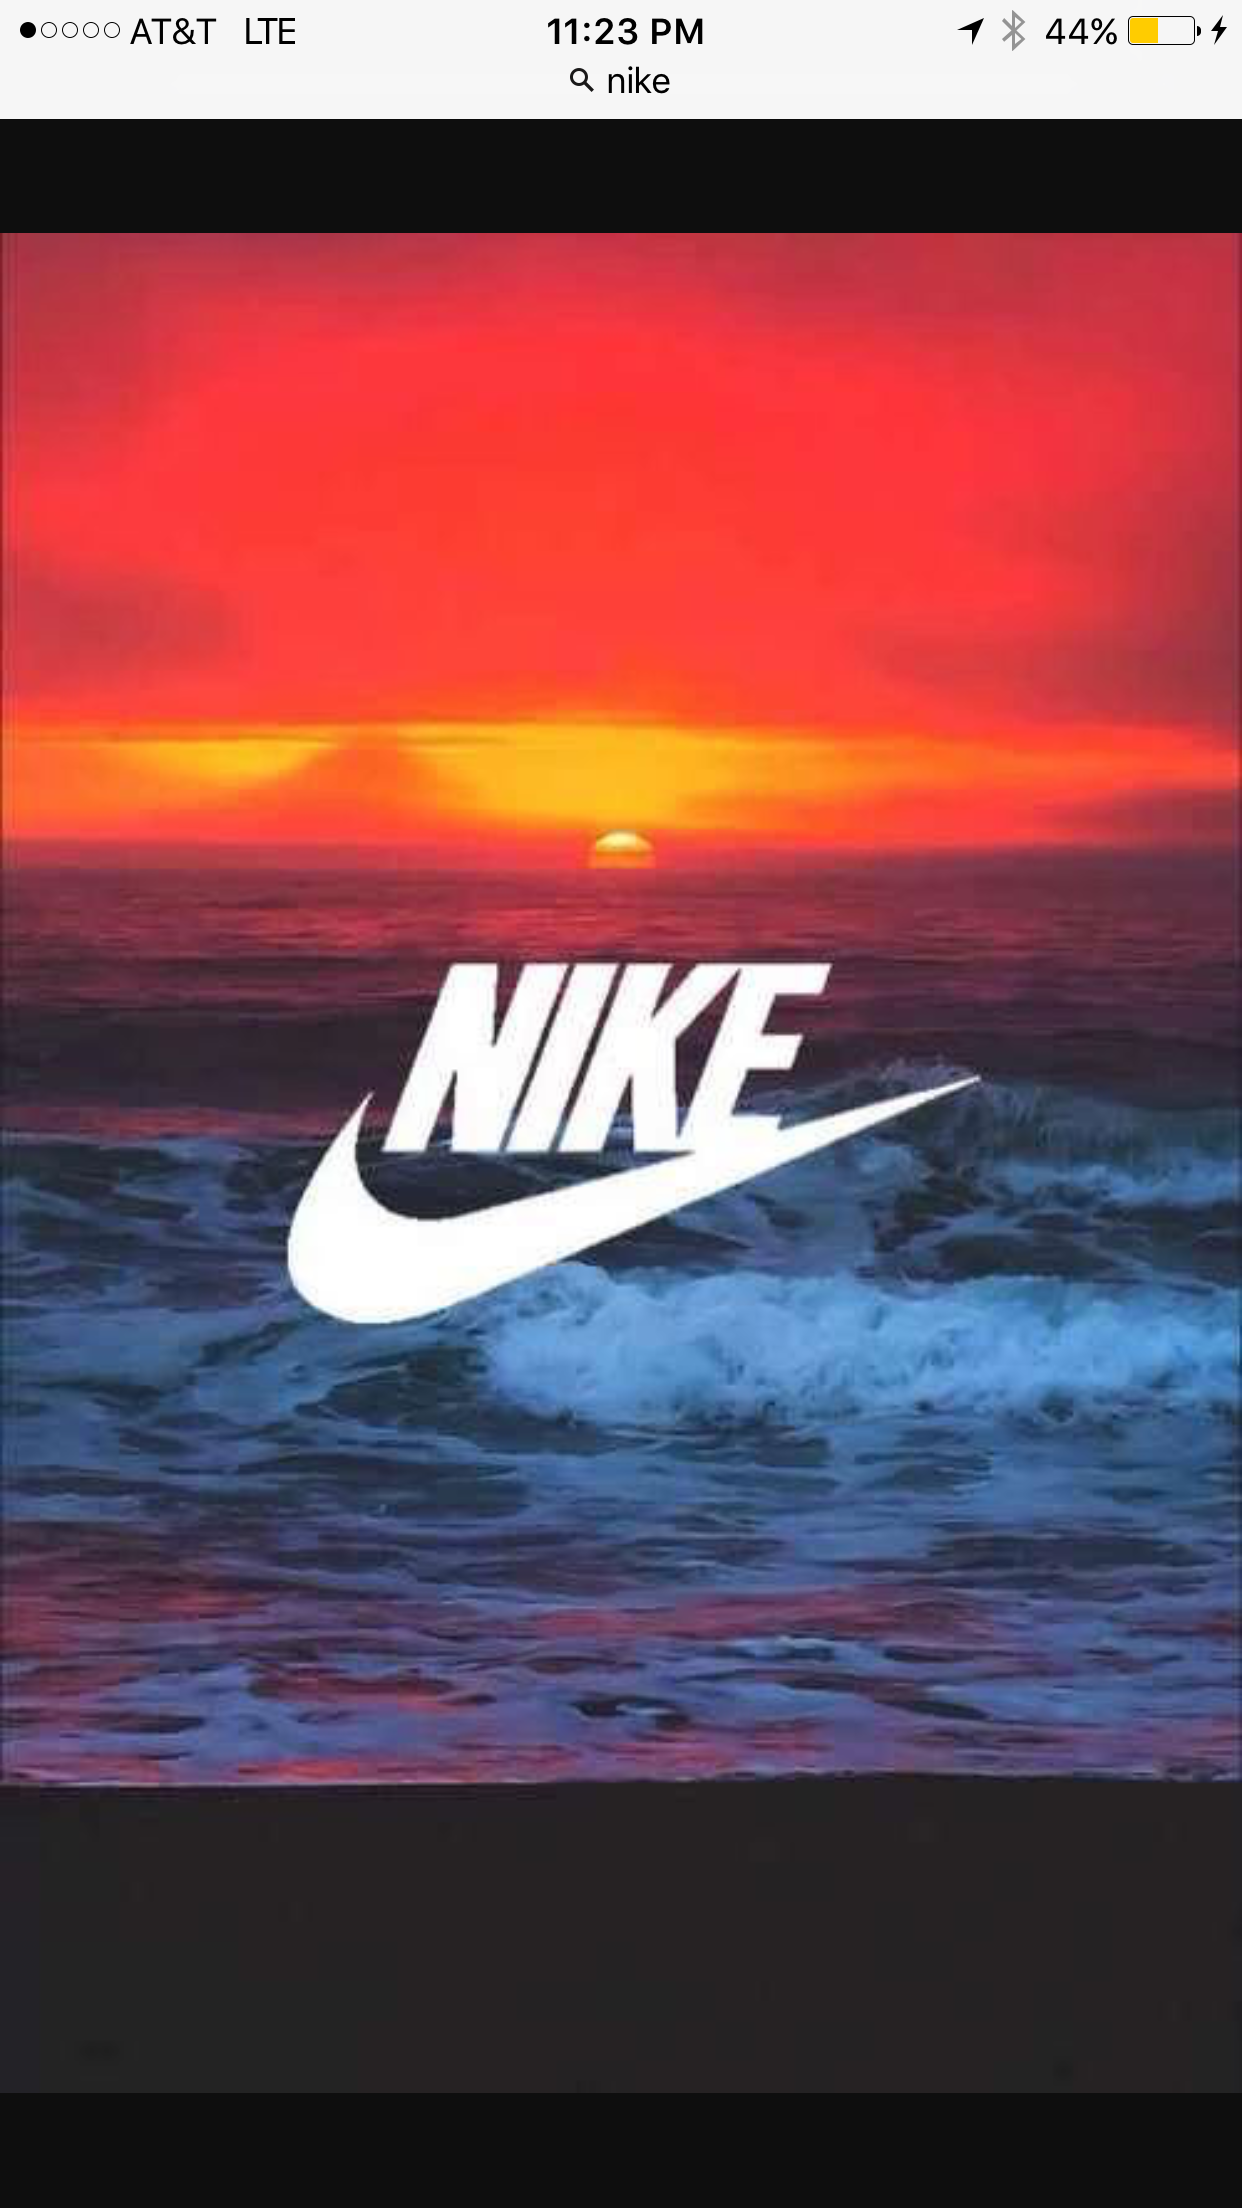 Pin by Peyton on Nike. ️ ️ Nike wallpaper, Nike